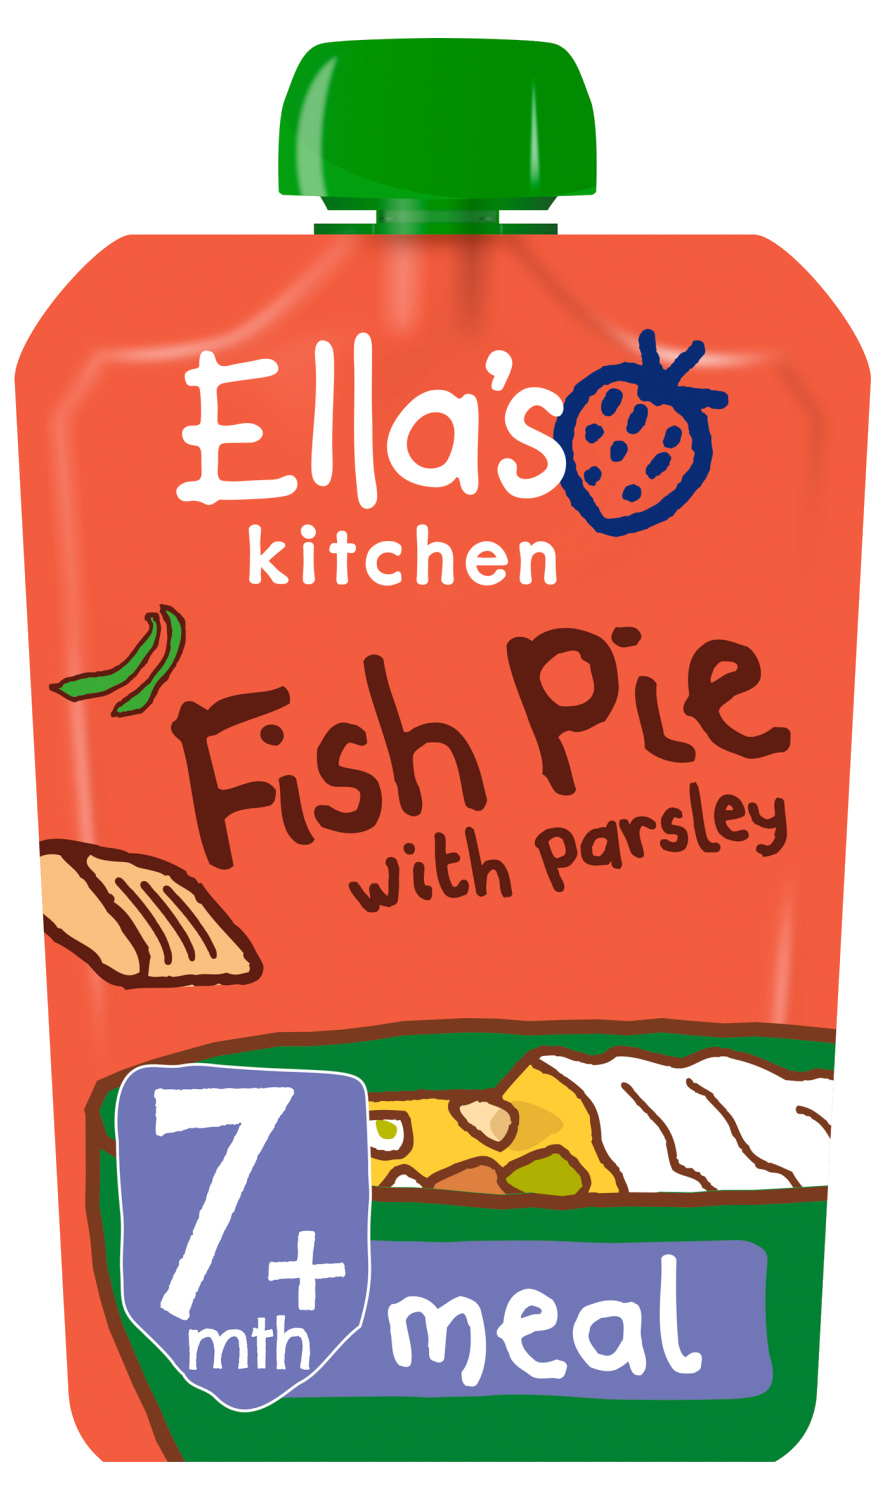 Ellas kitchen fish pie parsley pouch 7 months front of pack O